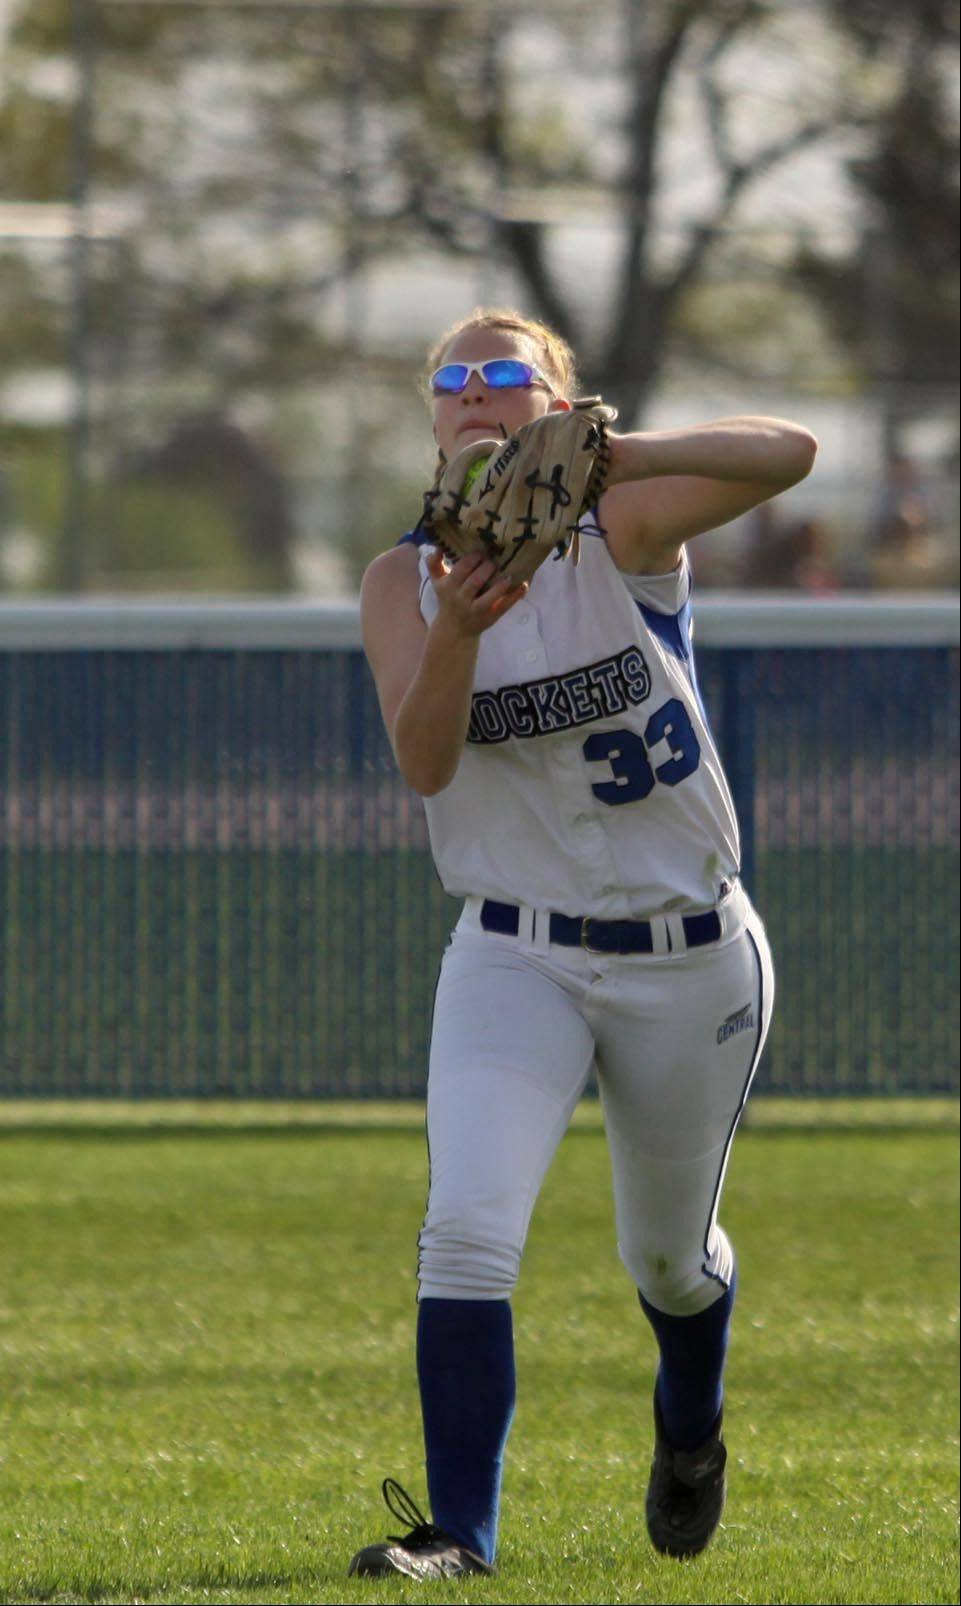 Burlington Central right fielder Becca Gerke snags a fly ball for an out against Hampshire Wednesday at Burlington.